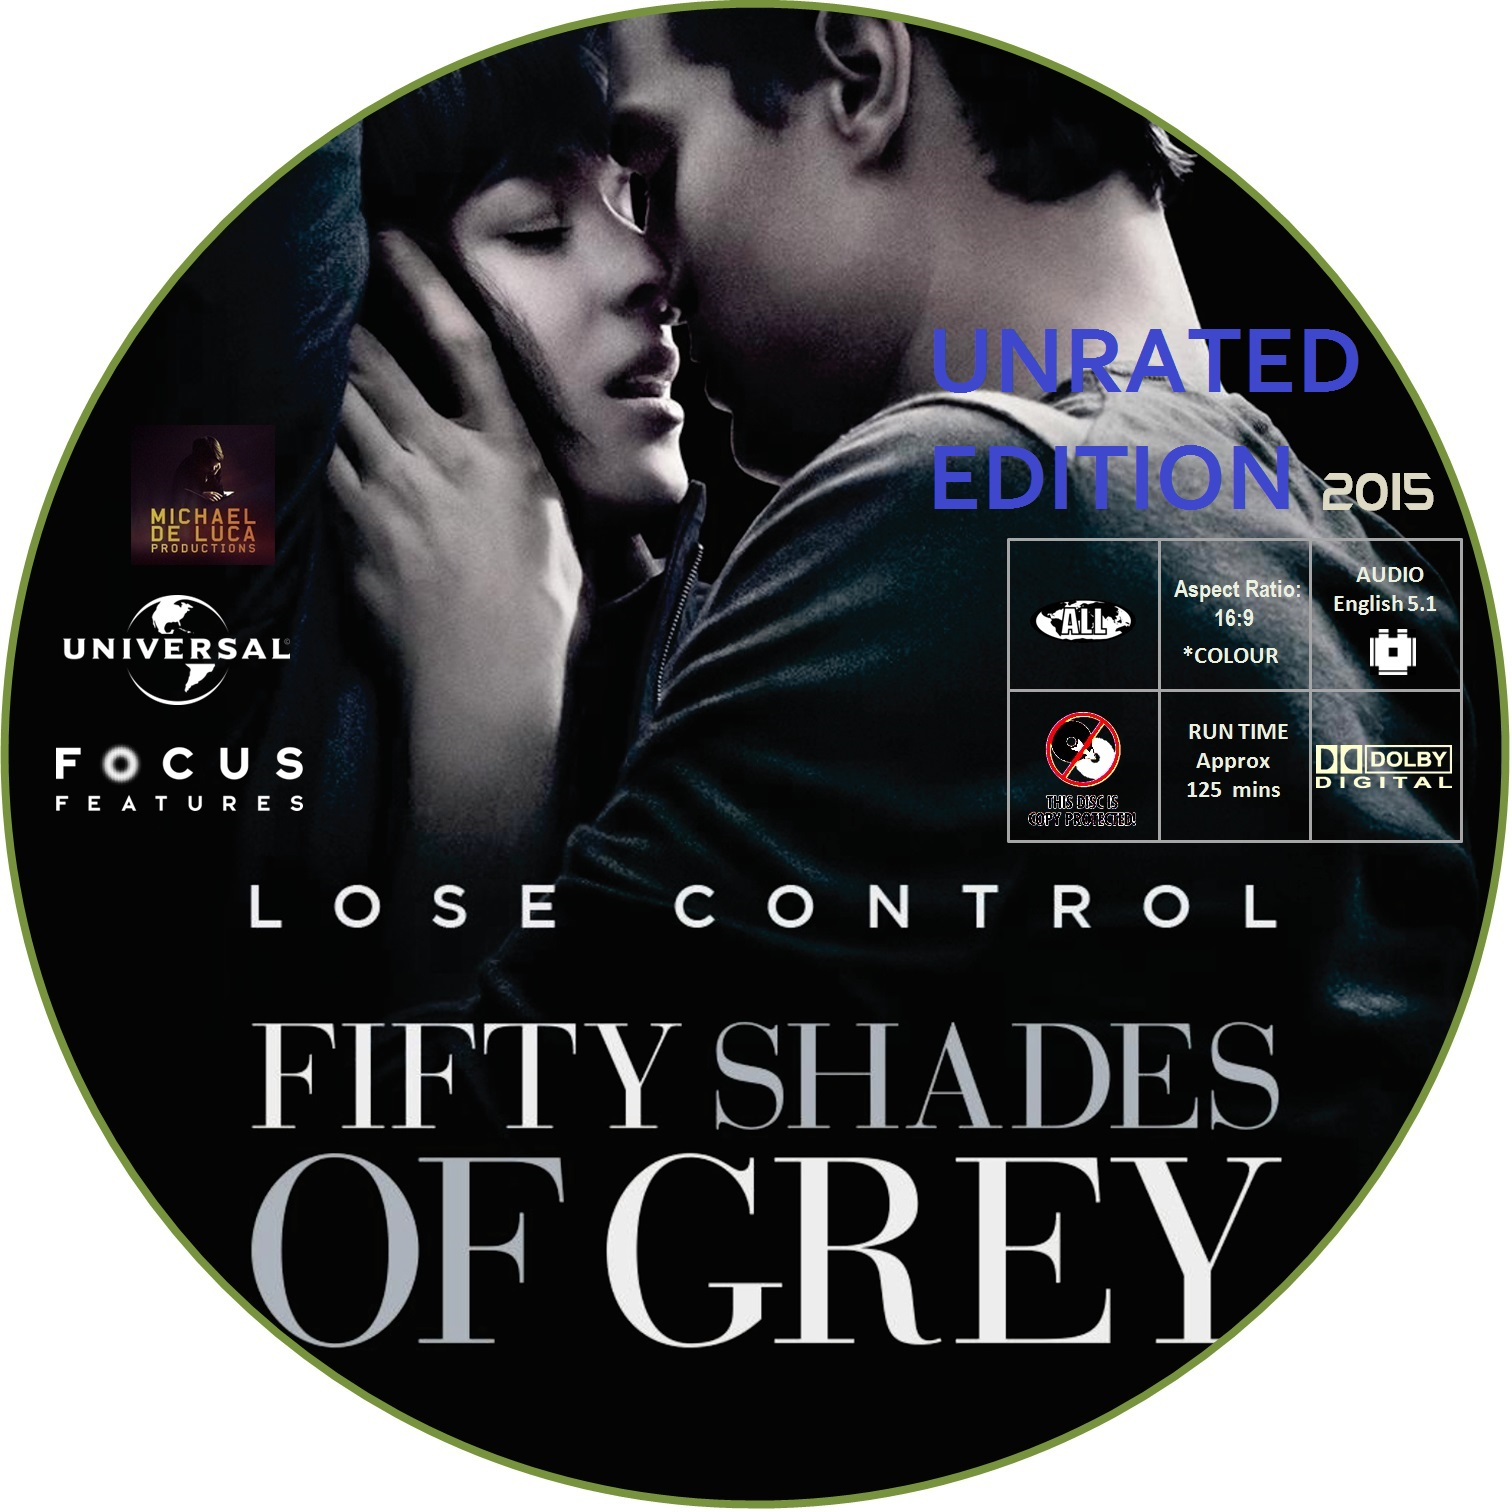 fifty shades unrated dvd covers cover century over. Black Bedroom Furniture Sets. Home Design Ideas